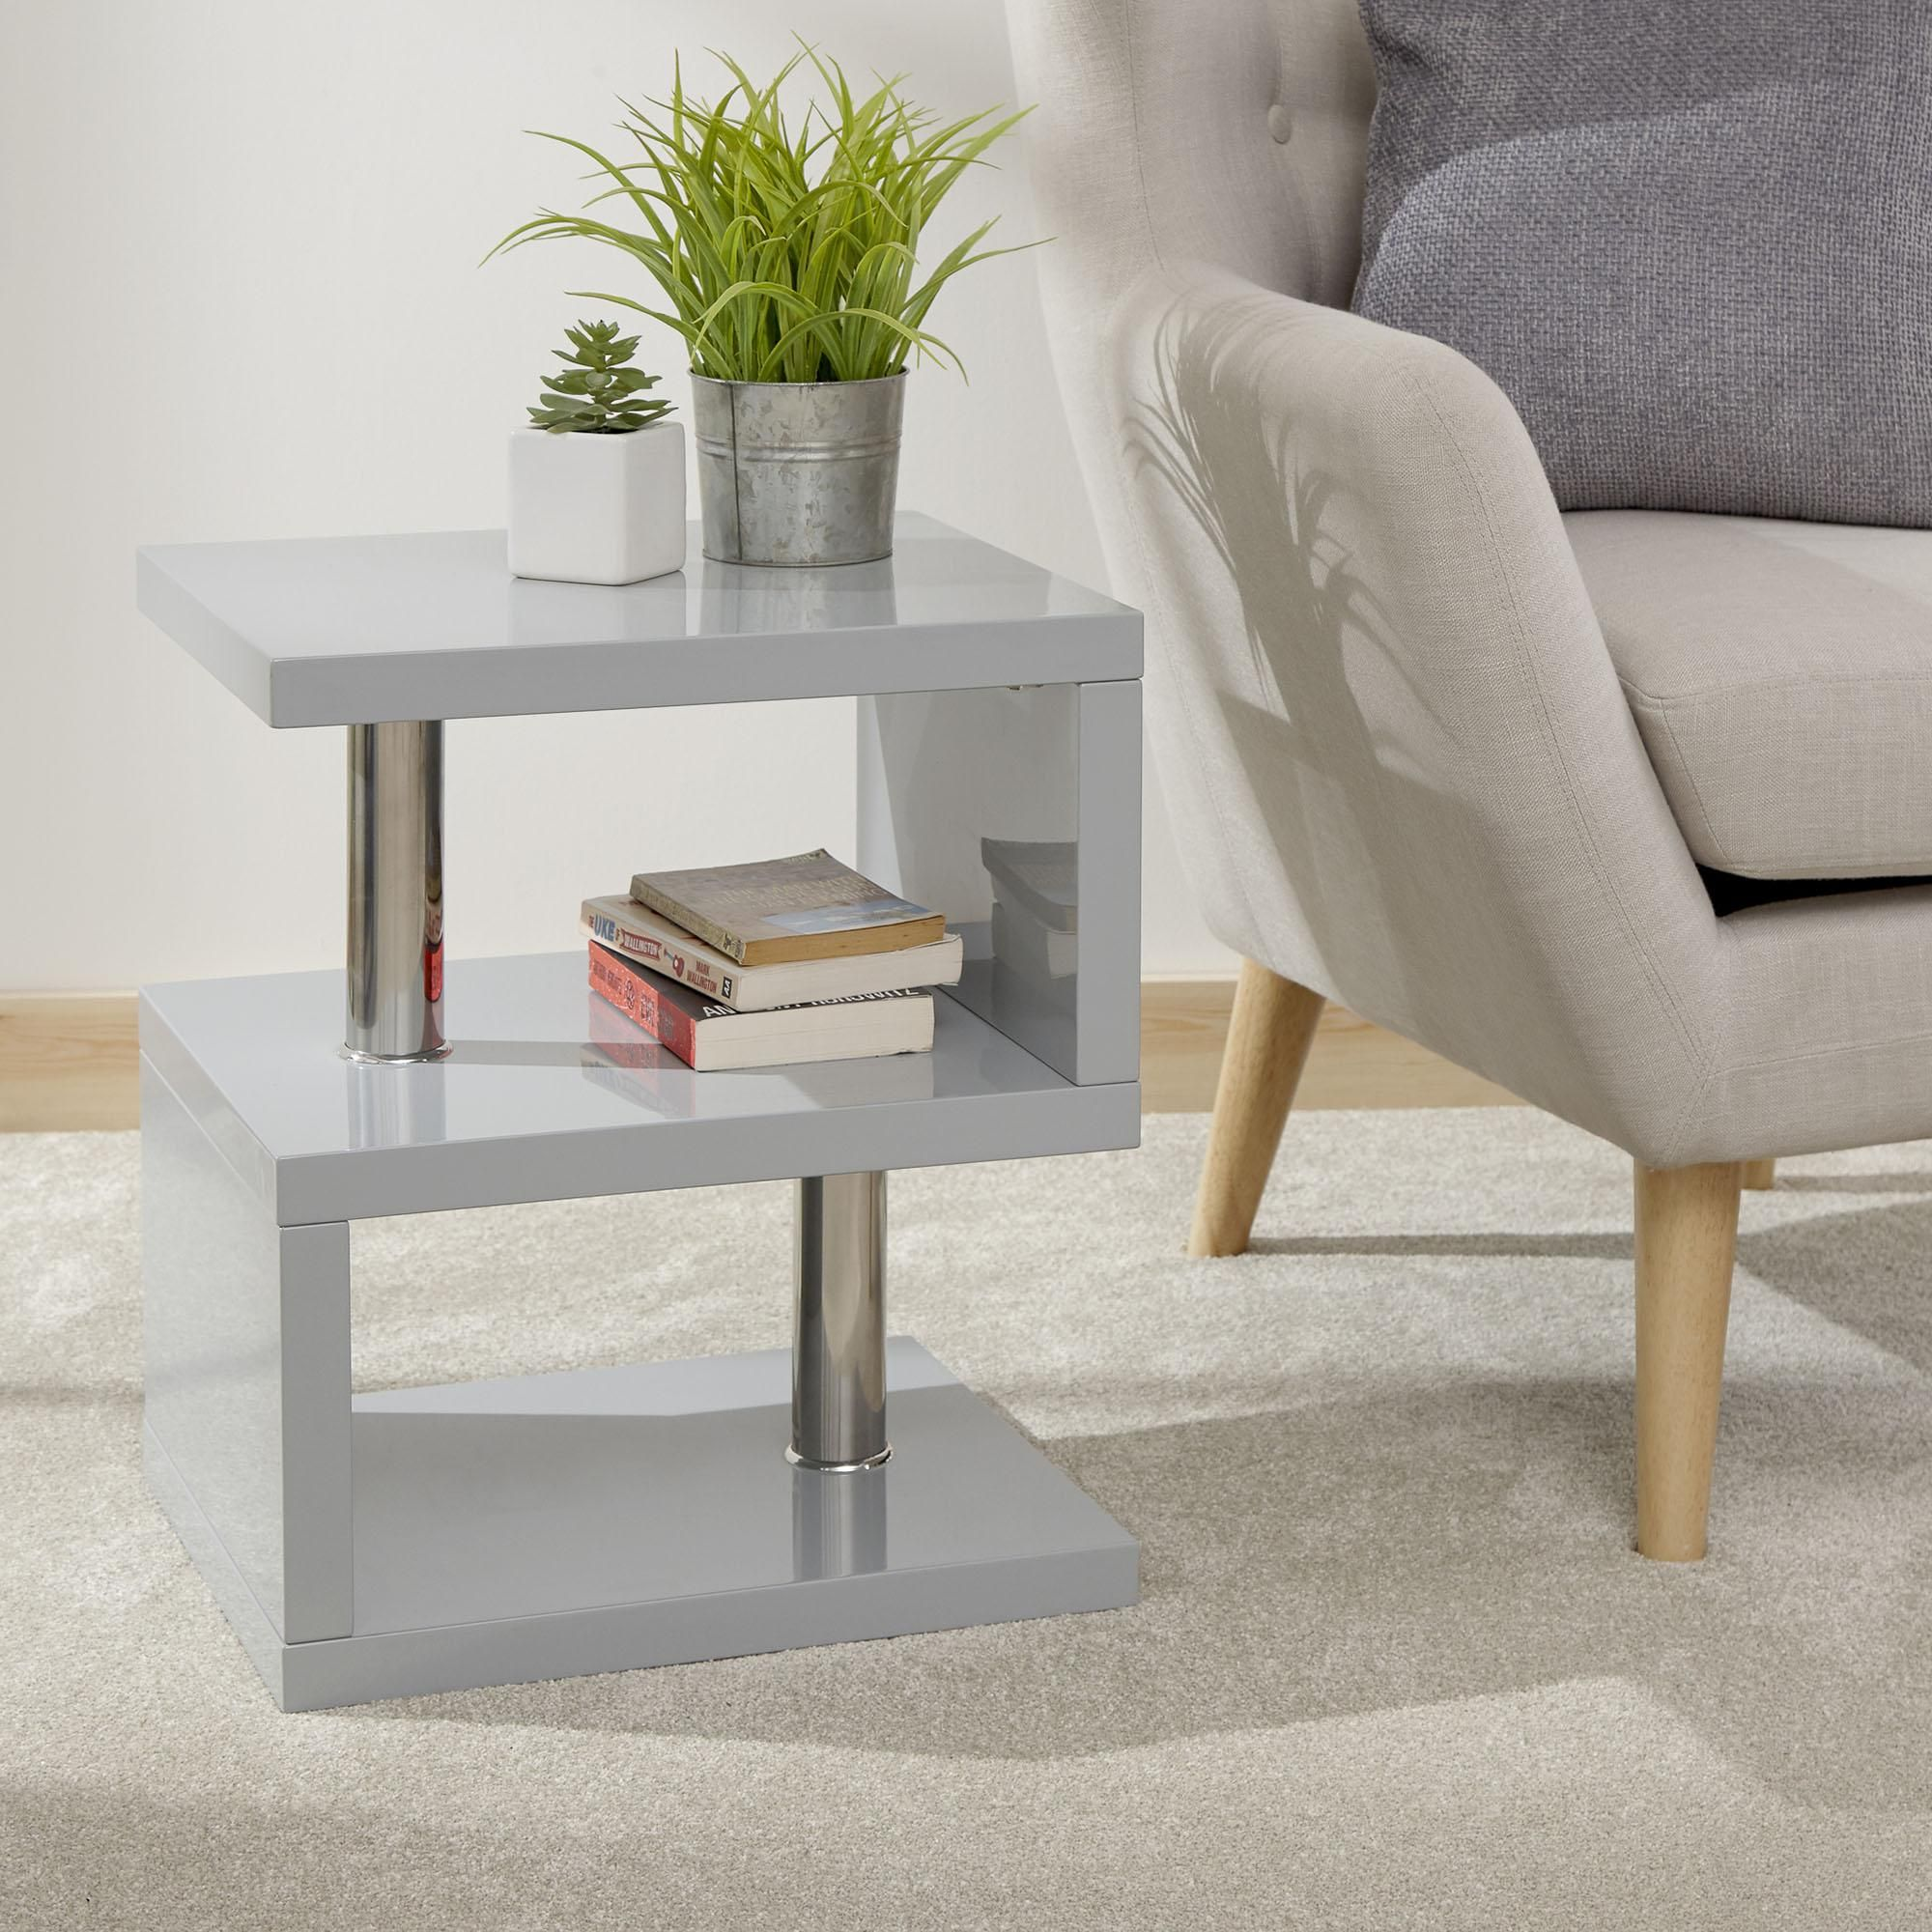 Pin On Living Room Table Sets #table #and #chairs #for #living #room